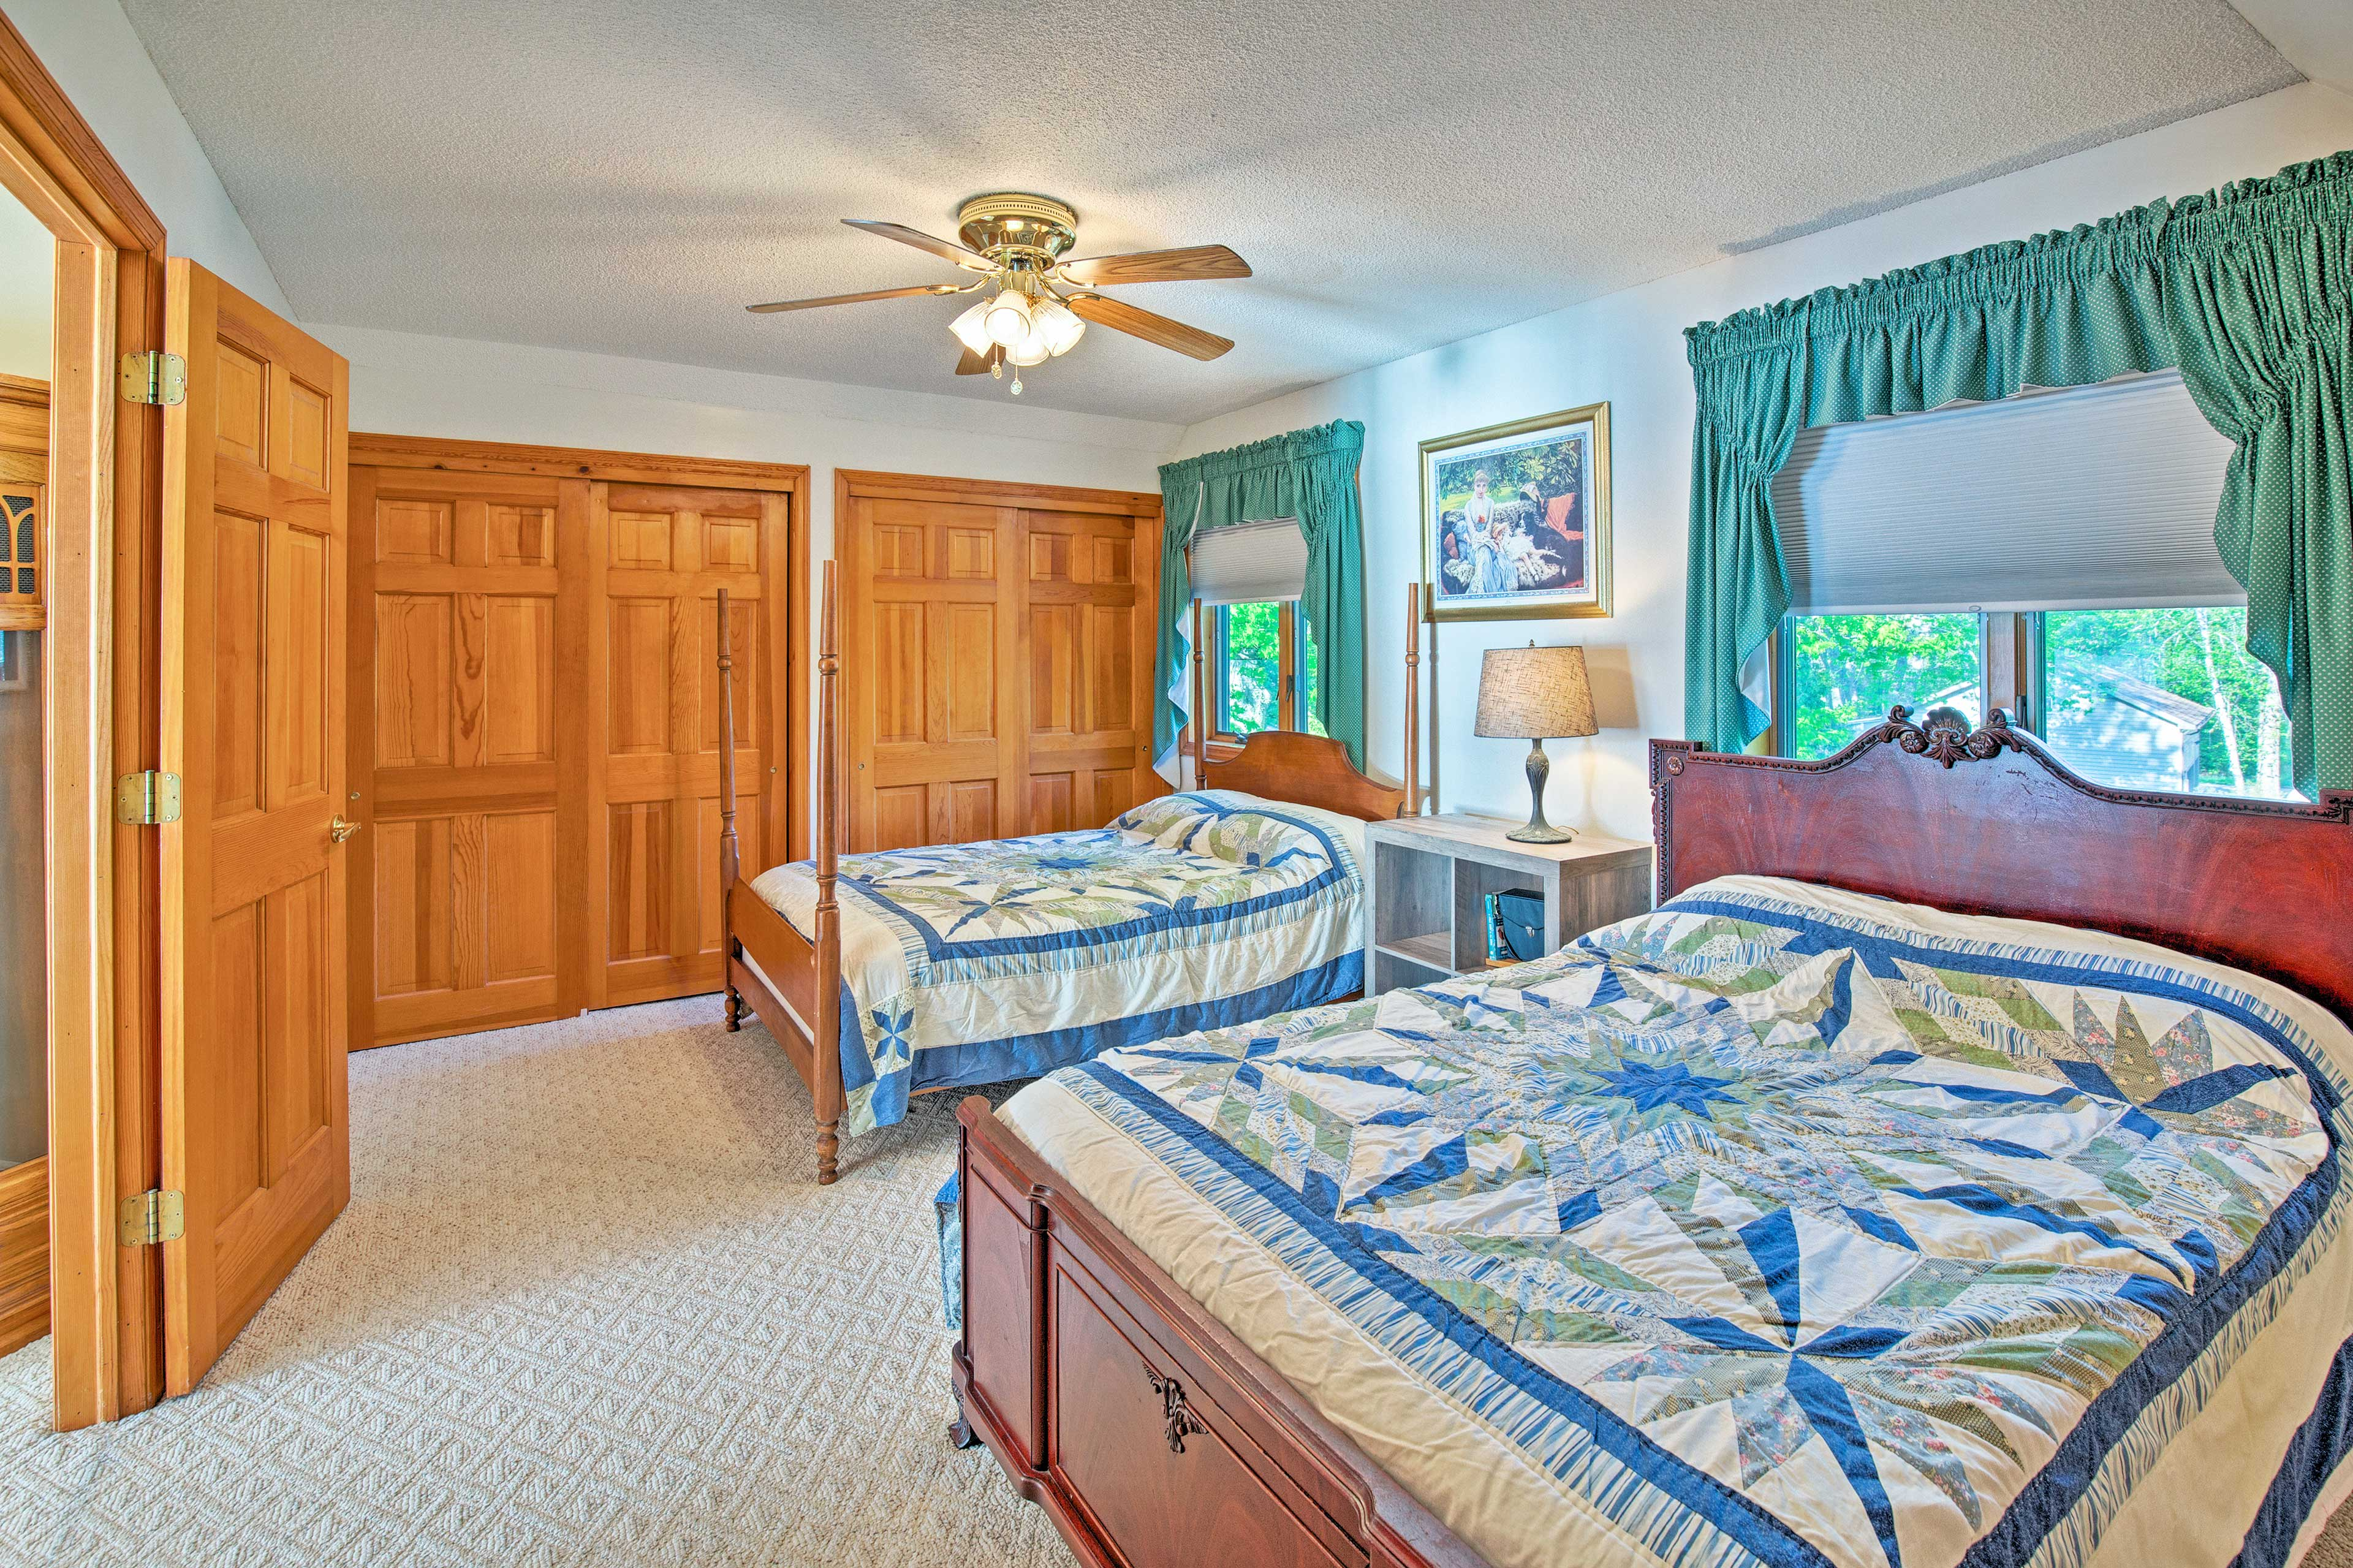 This spacious room boasts 2 full-sized beds.